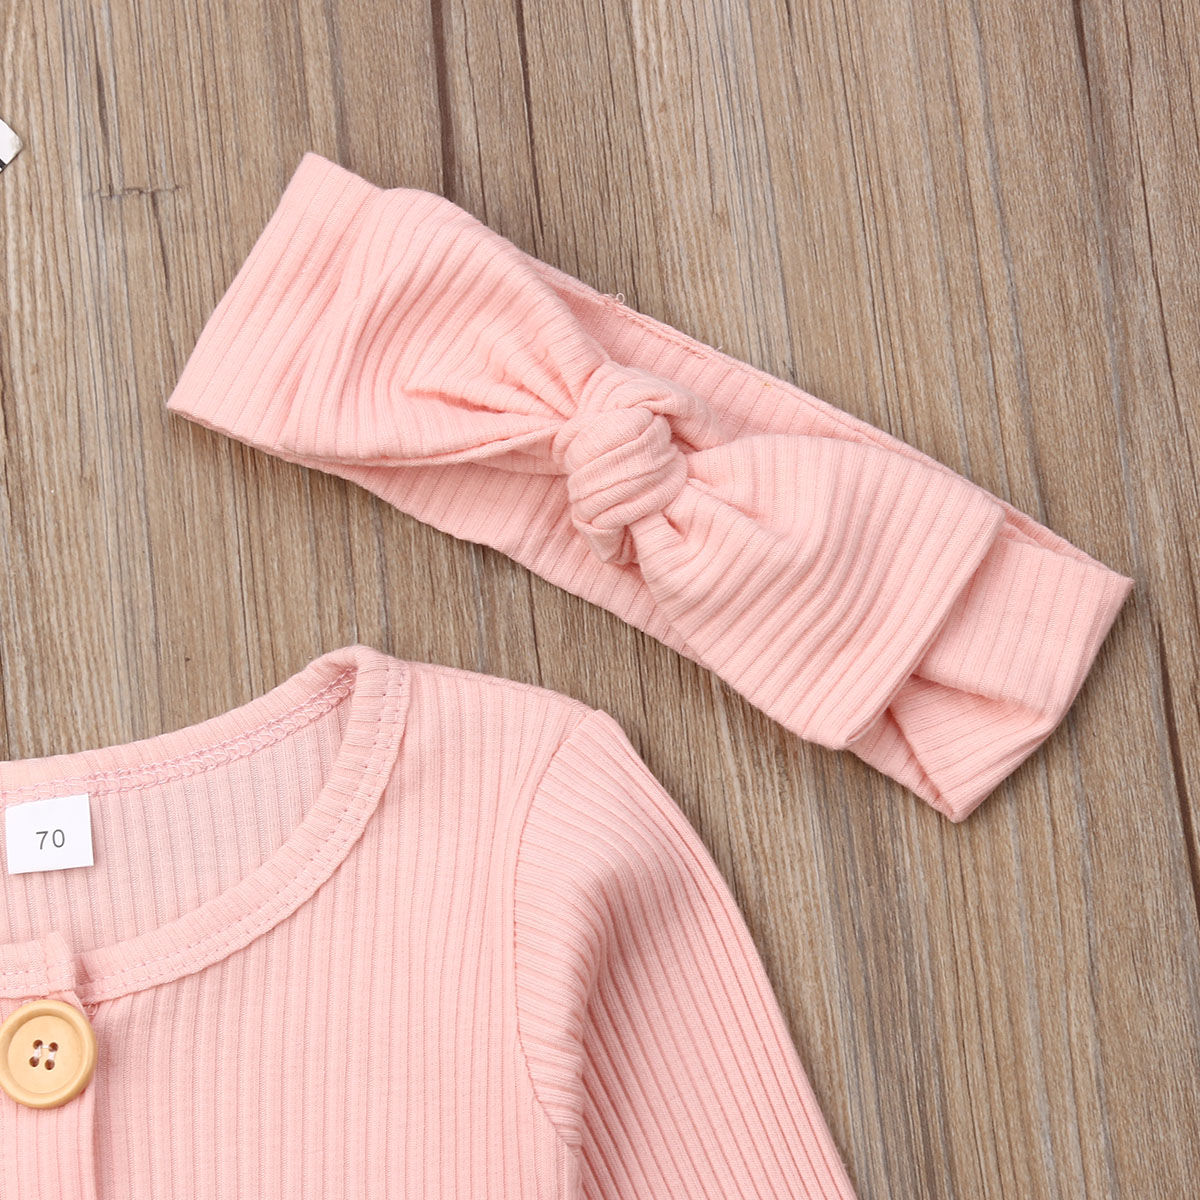 Hf56089c06f744dabb20d2afb618c87d4S Spring Fall Newborn Baby Girl Boy Clothes Long Sleeve Knitted Romper + Headband Jumpsuit 2PCS Outfit 0-24M